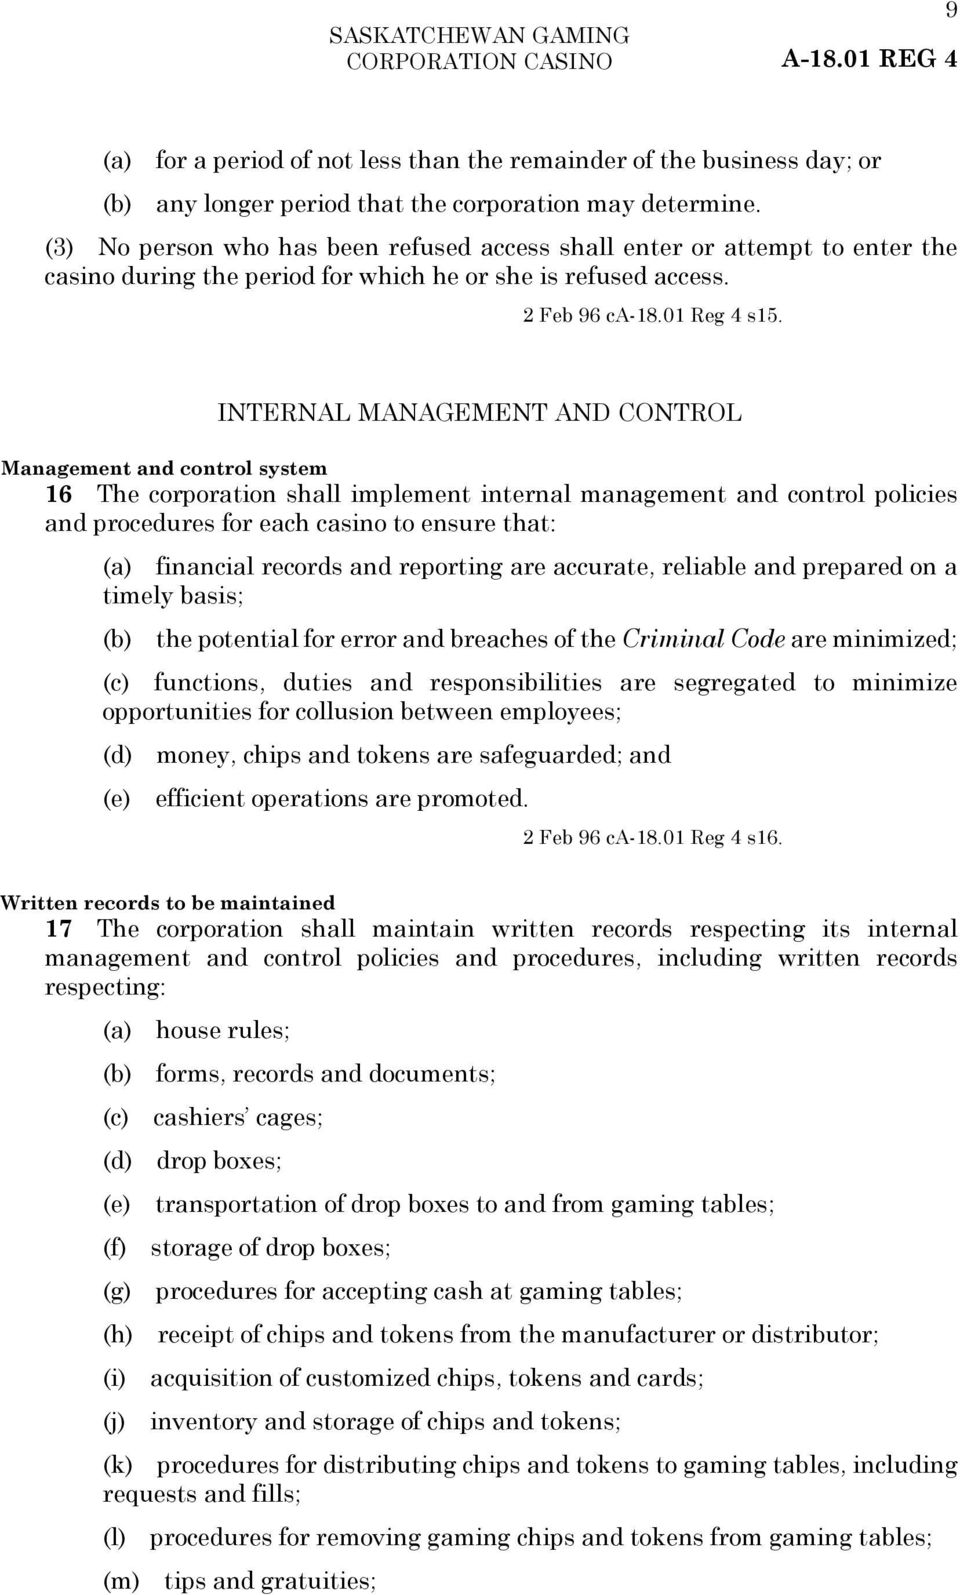 INTERNAL MANAGEMENT AND CONTROL Management and control system 16 The corporation shall implement internal management and control policies and procedures for each casino to ensure that: (a) financial